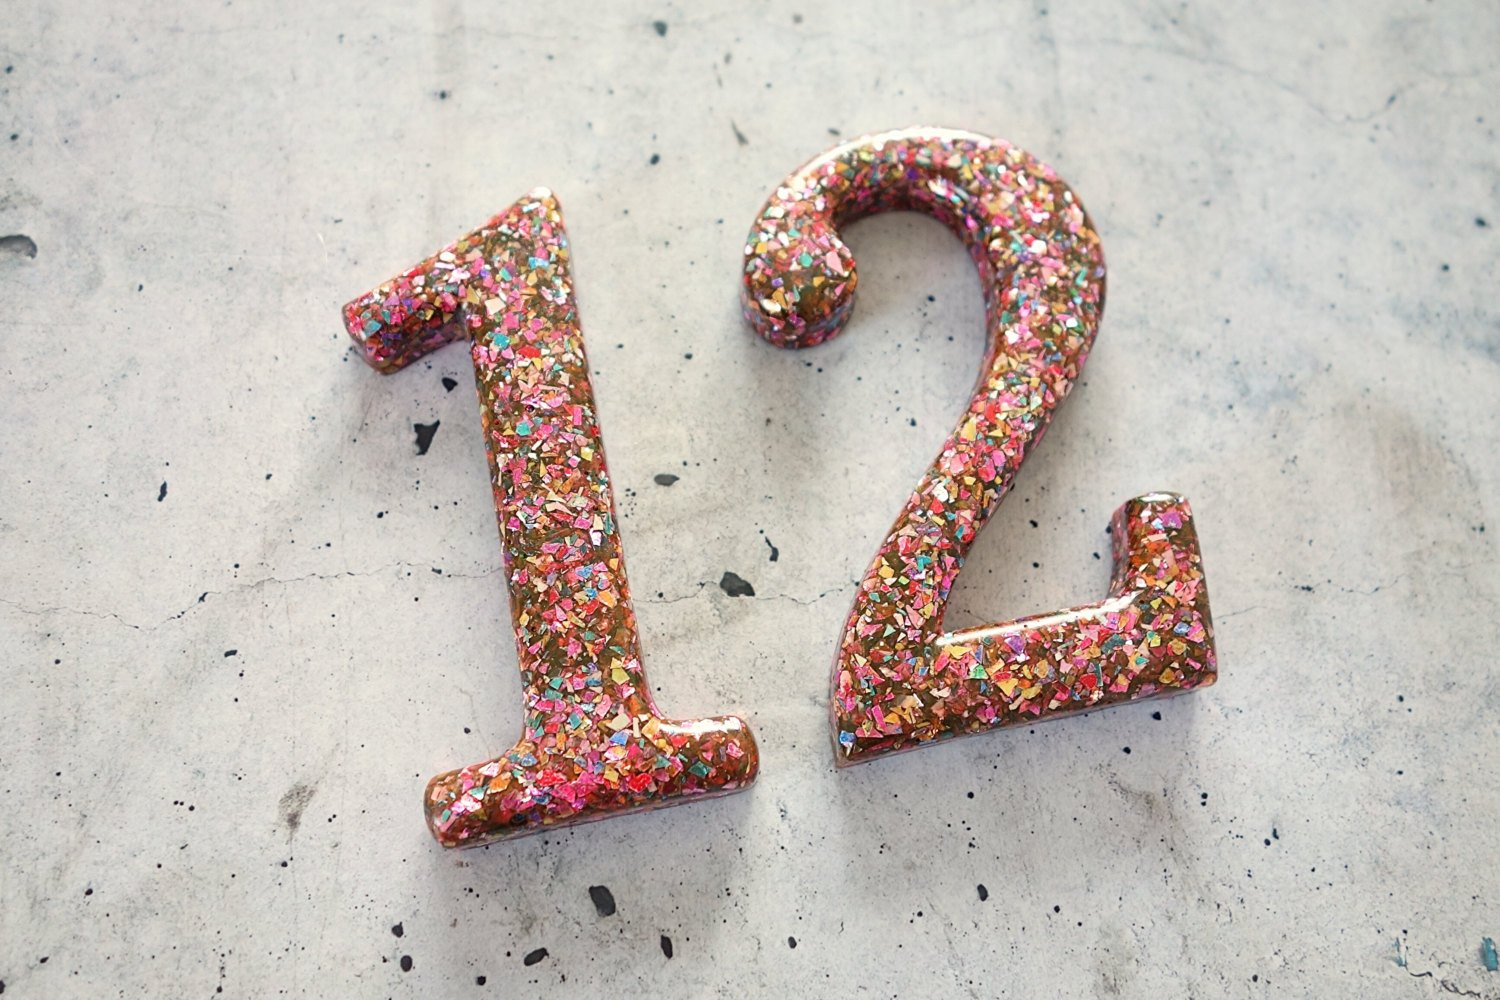 23 Recommended Resin Cowboy Boot Vase 2021 free download resin cowboy boot vase of any two or more glitter decorative numbers glitter numbers etsy within dc29fc294c28ezoom